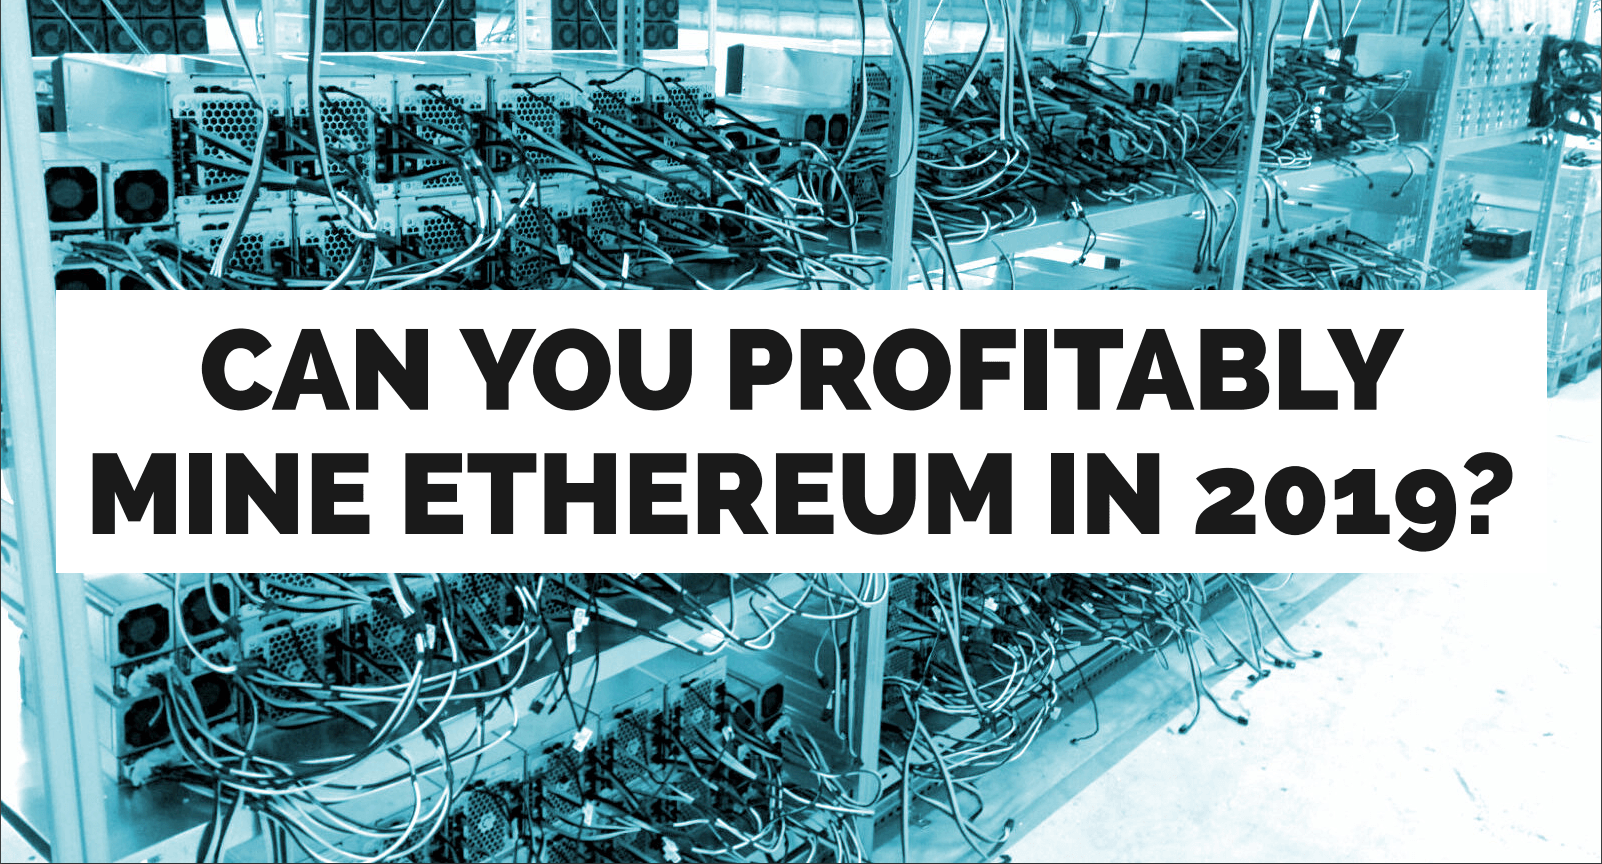 Ethereum Mining in 2019: Is it Profitable? And The Best Way To Mine It?